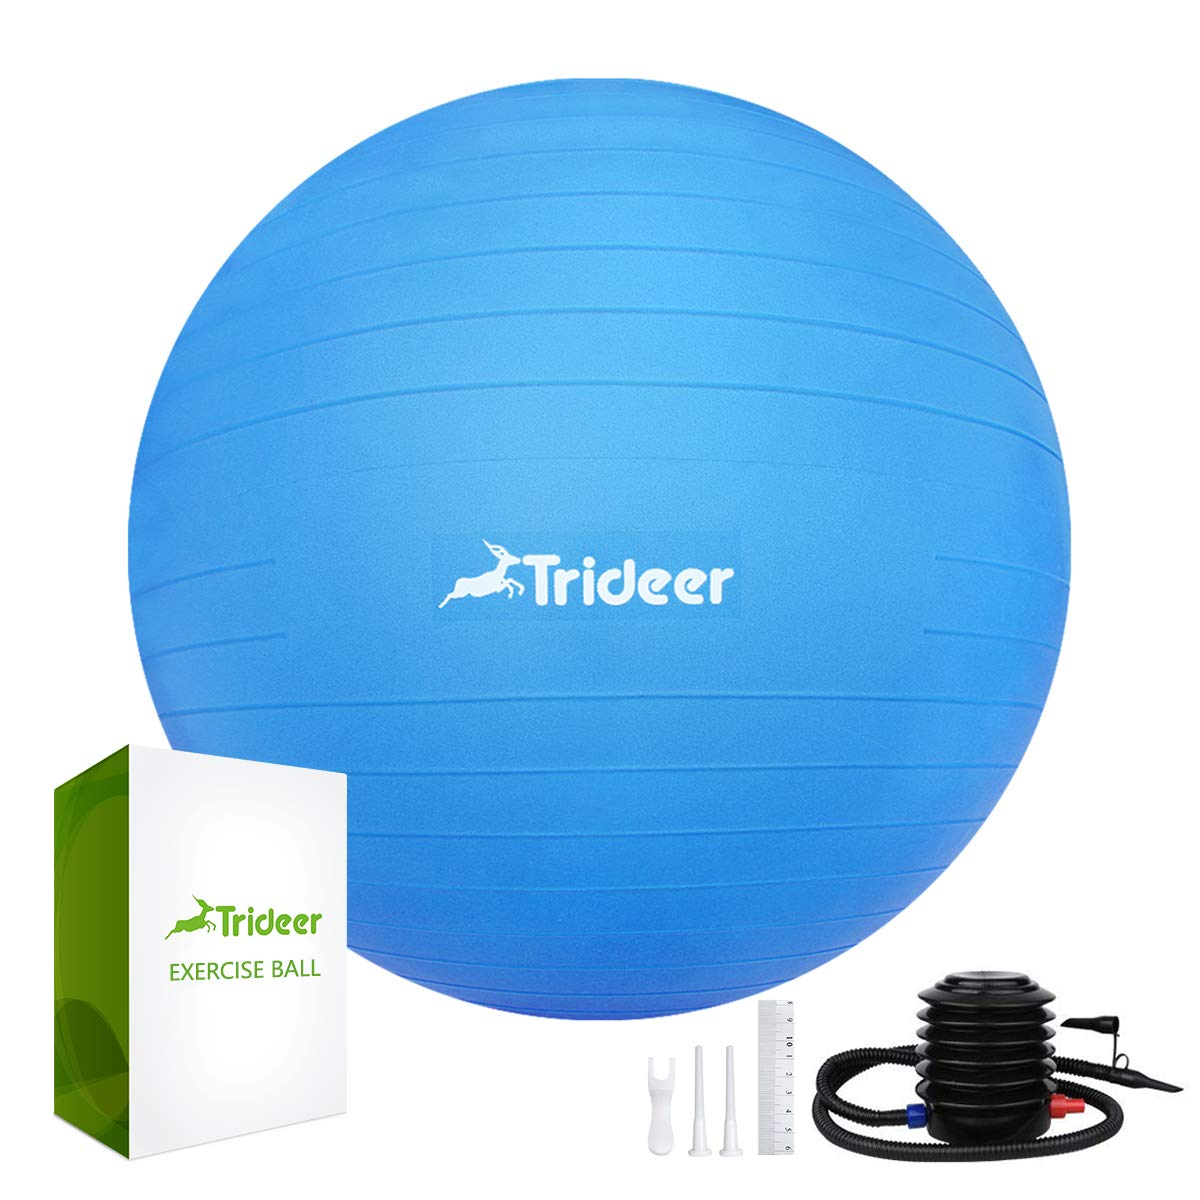 Trideer Extra Thick Yoga & Exercise Ball, 5 Sizes Ball Chair, Heavy Duty to Support 2200lbs, for Balance, Stability…